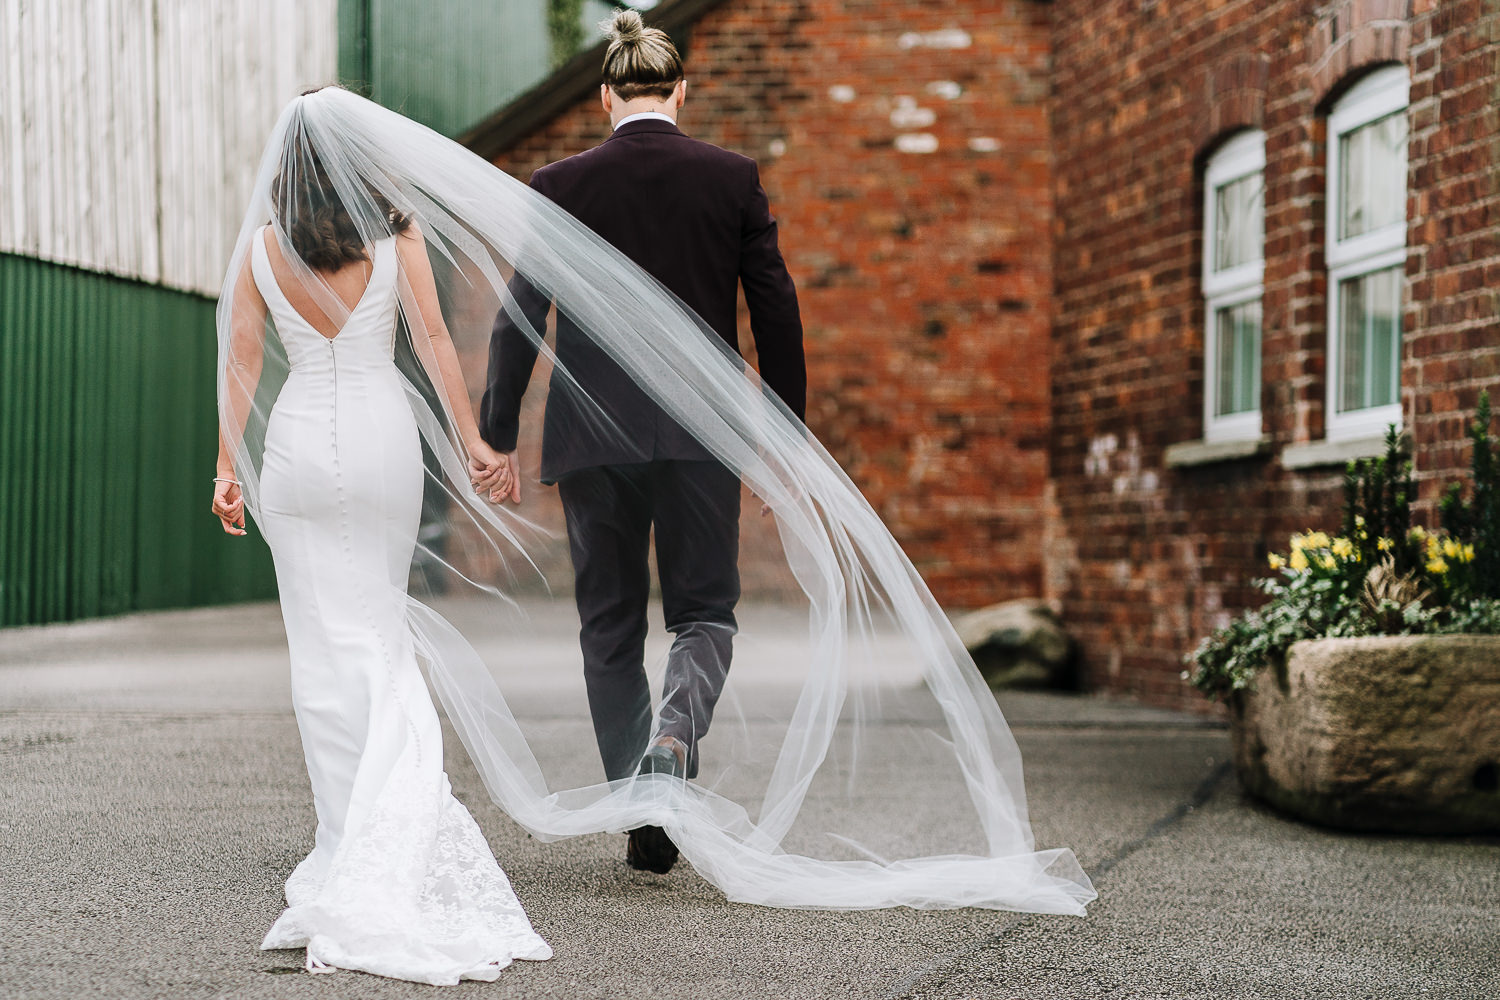 bride and groom walking with the veil blowing in the air